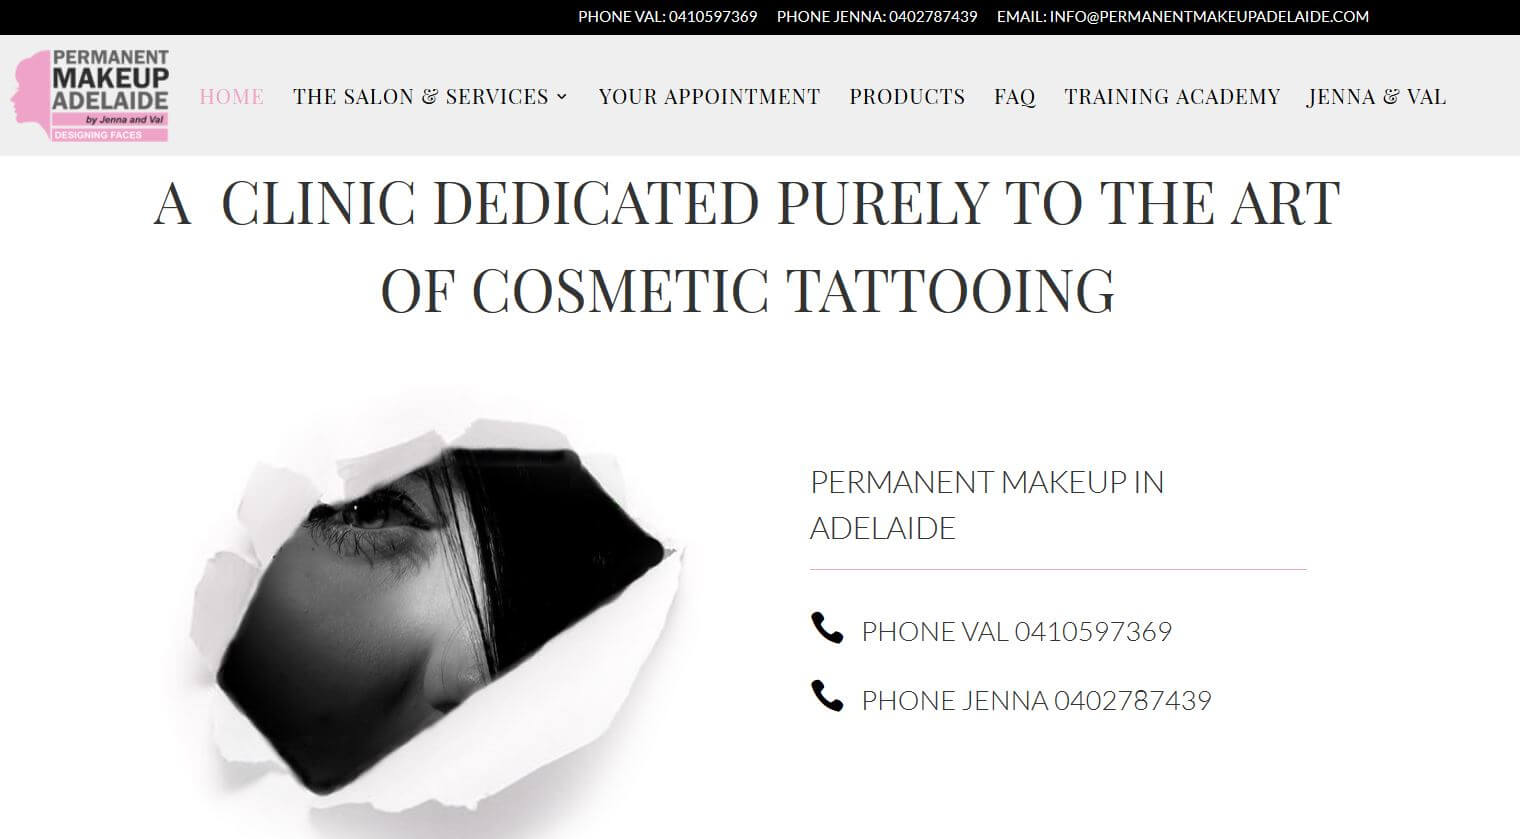 Permanent Makeup in Adelaide Website